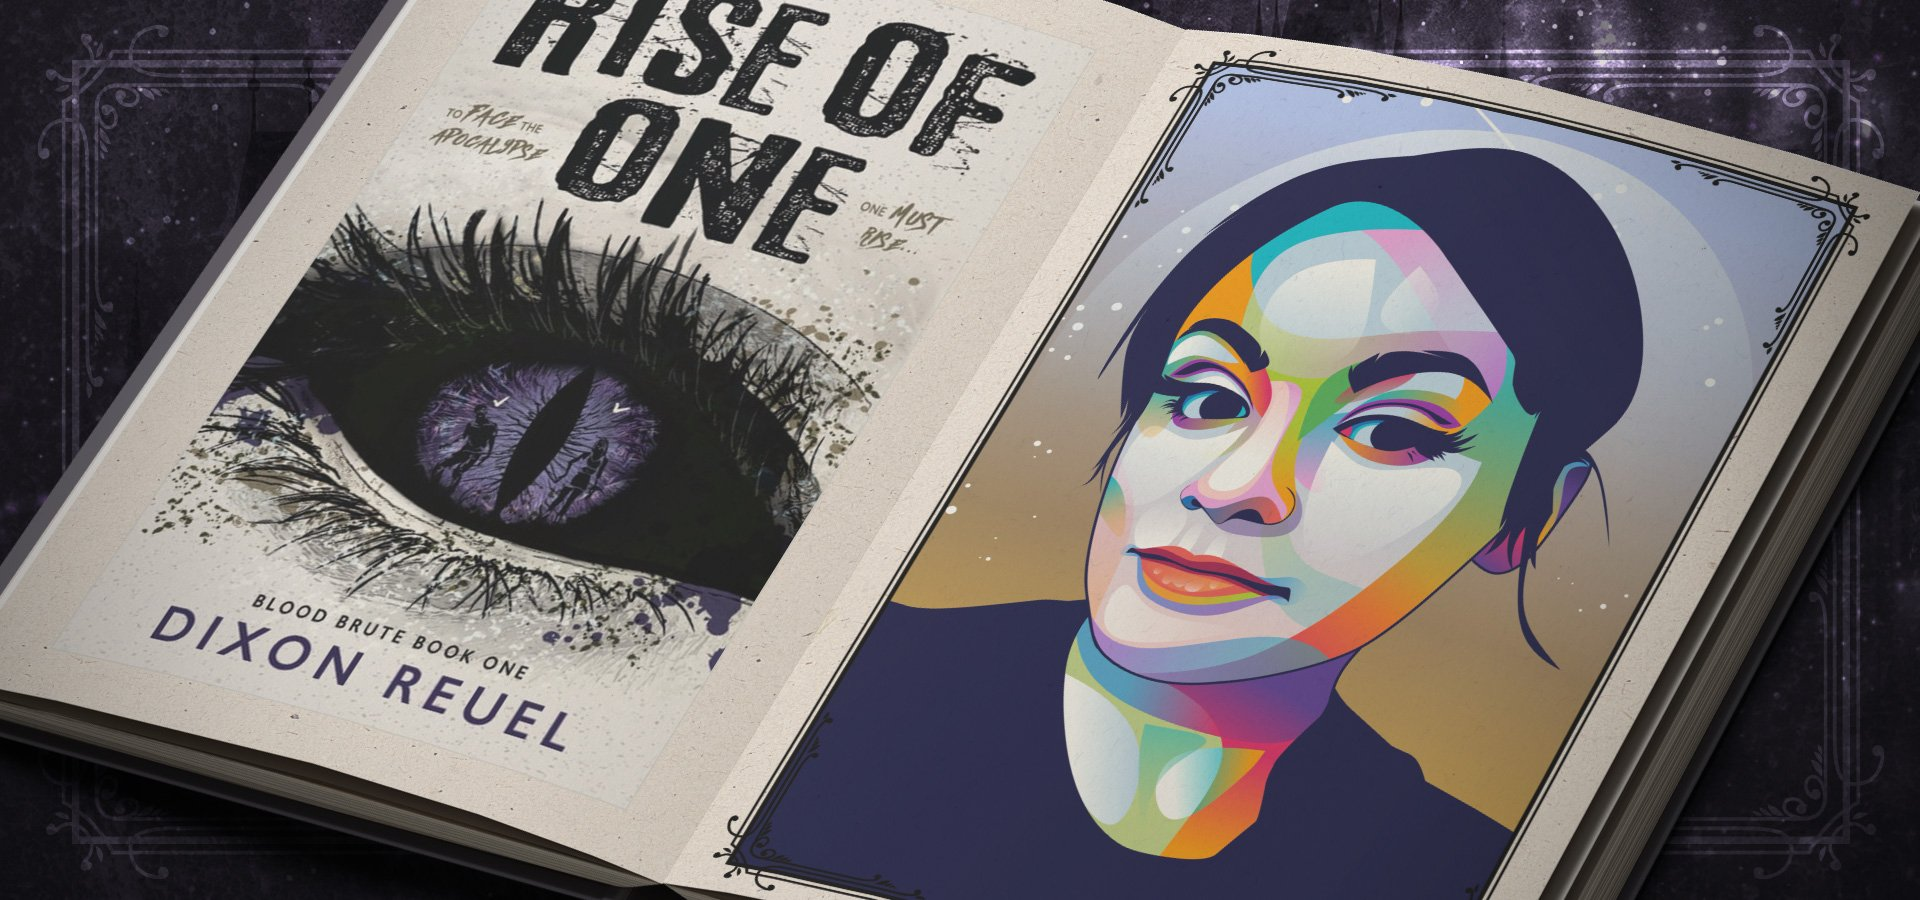 Rise of One by Dixon Reuel